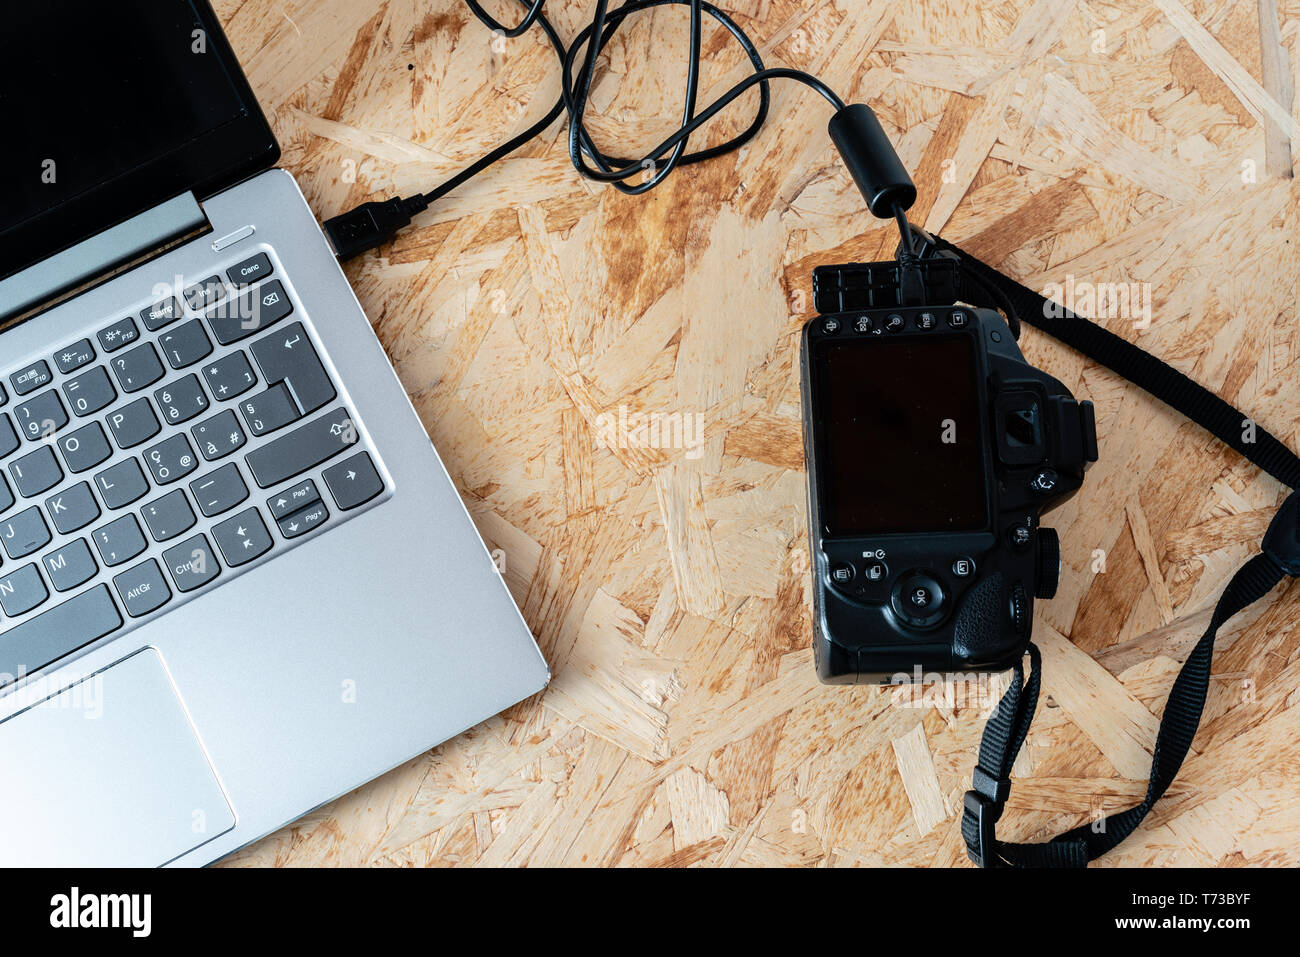 notebook connected to a digital SLR camera with usb cable, thetering mode, on a desktop - Stock Image